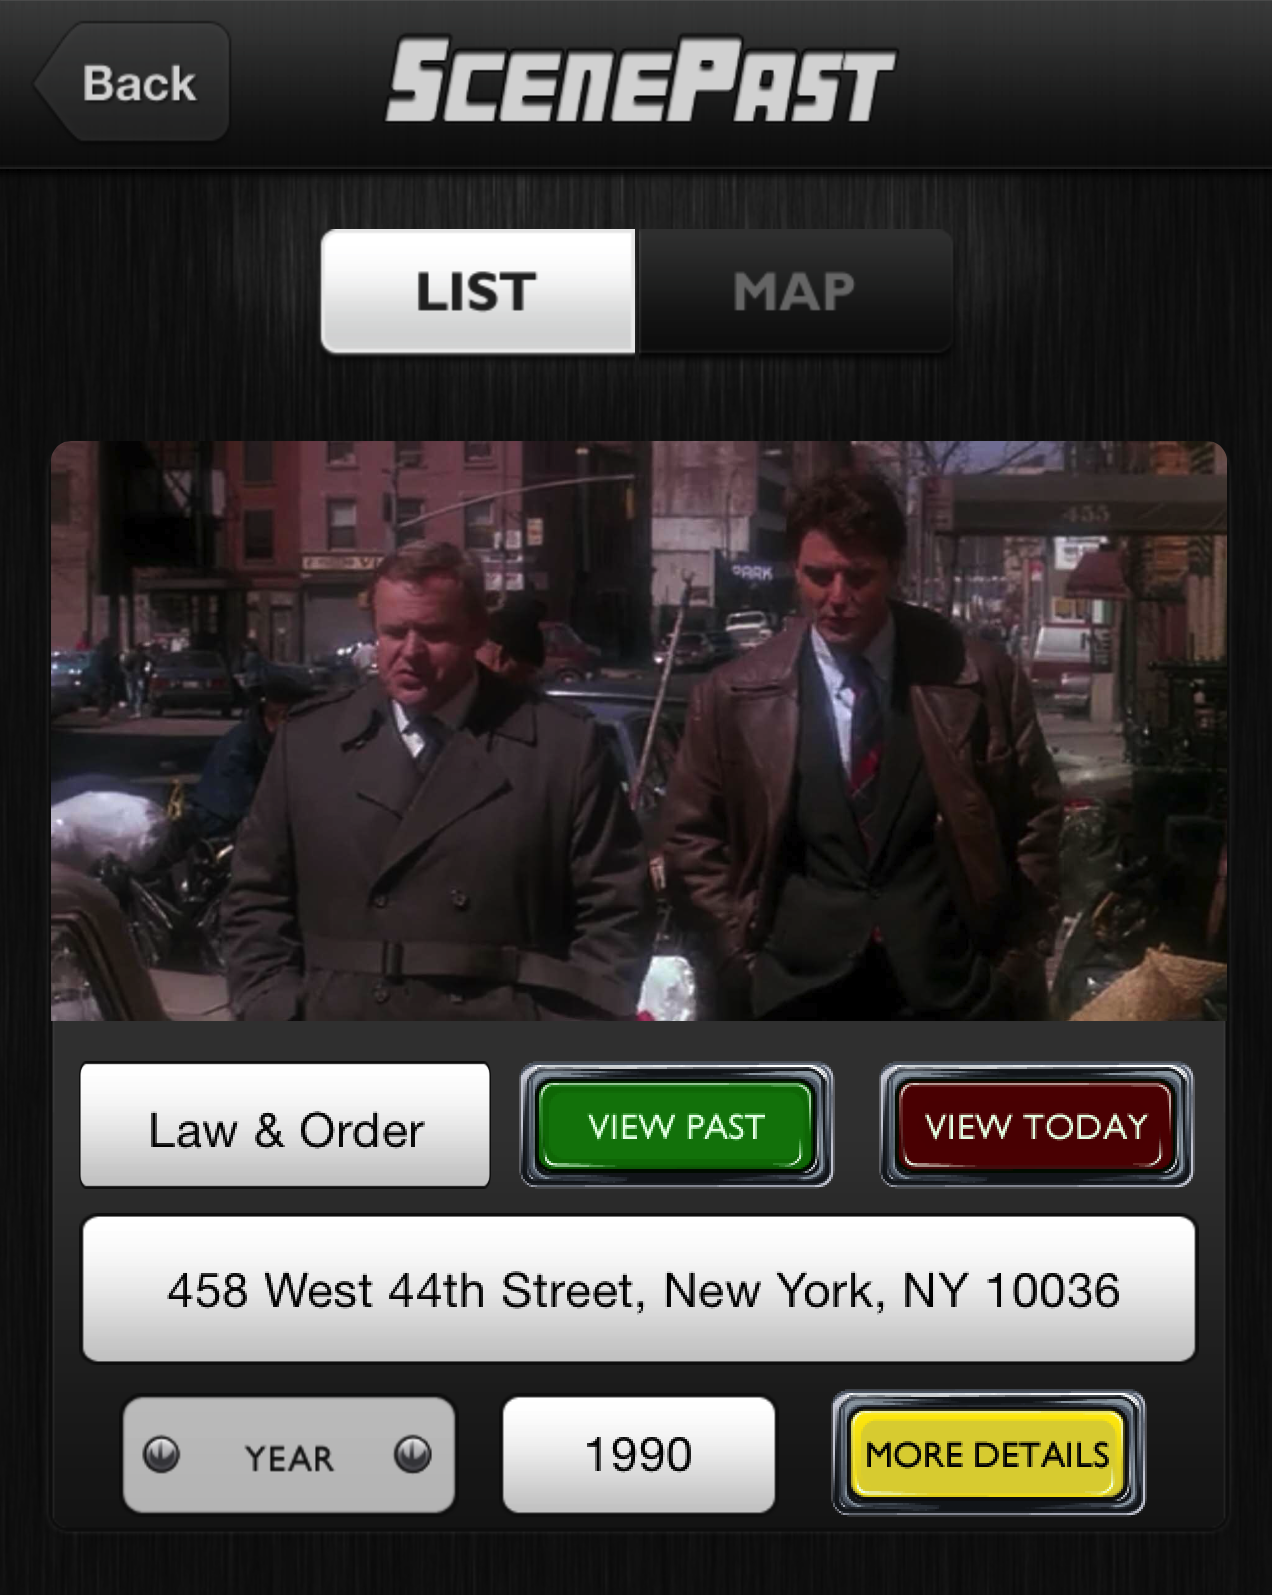 Law & Order, Then